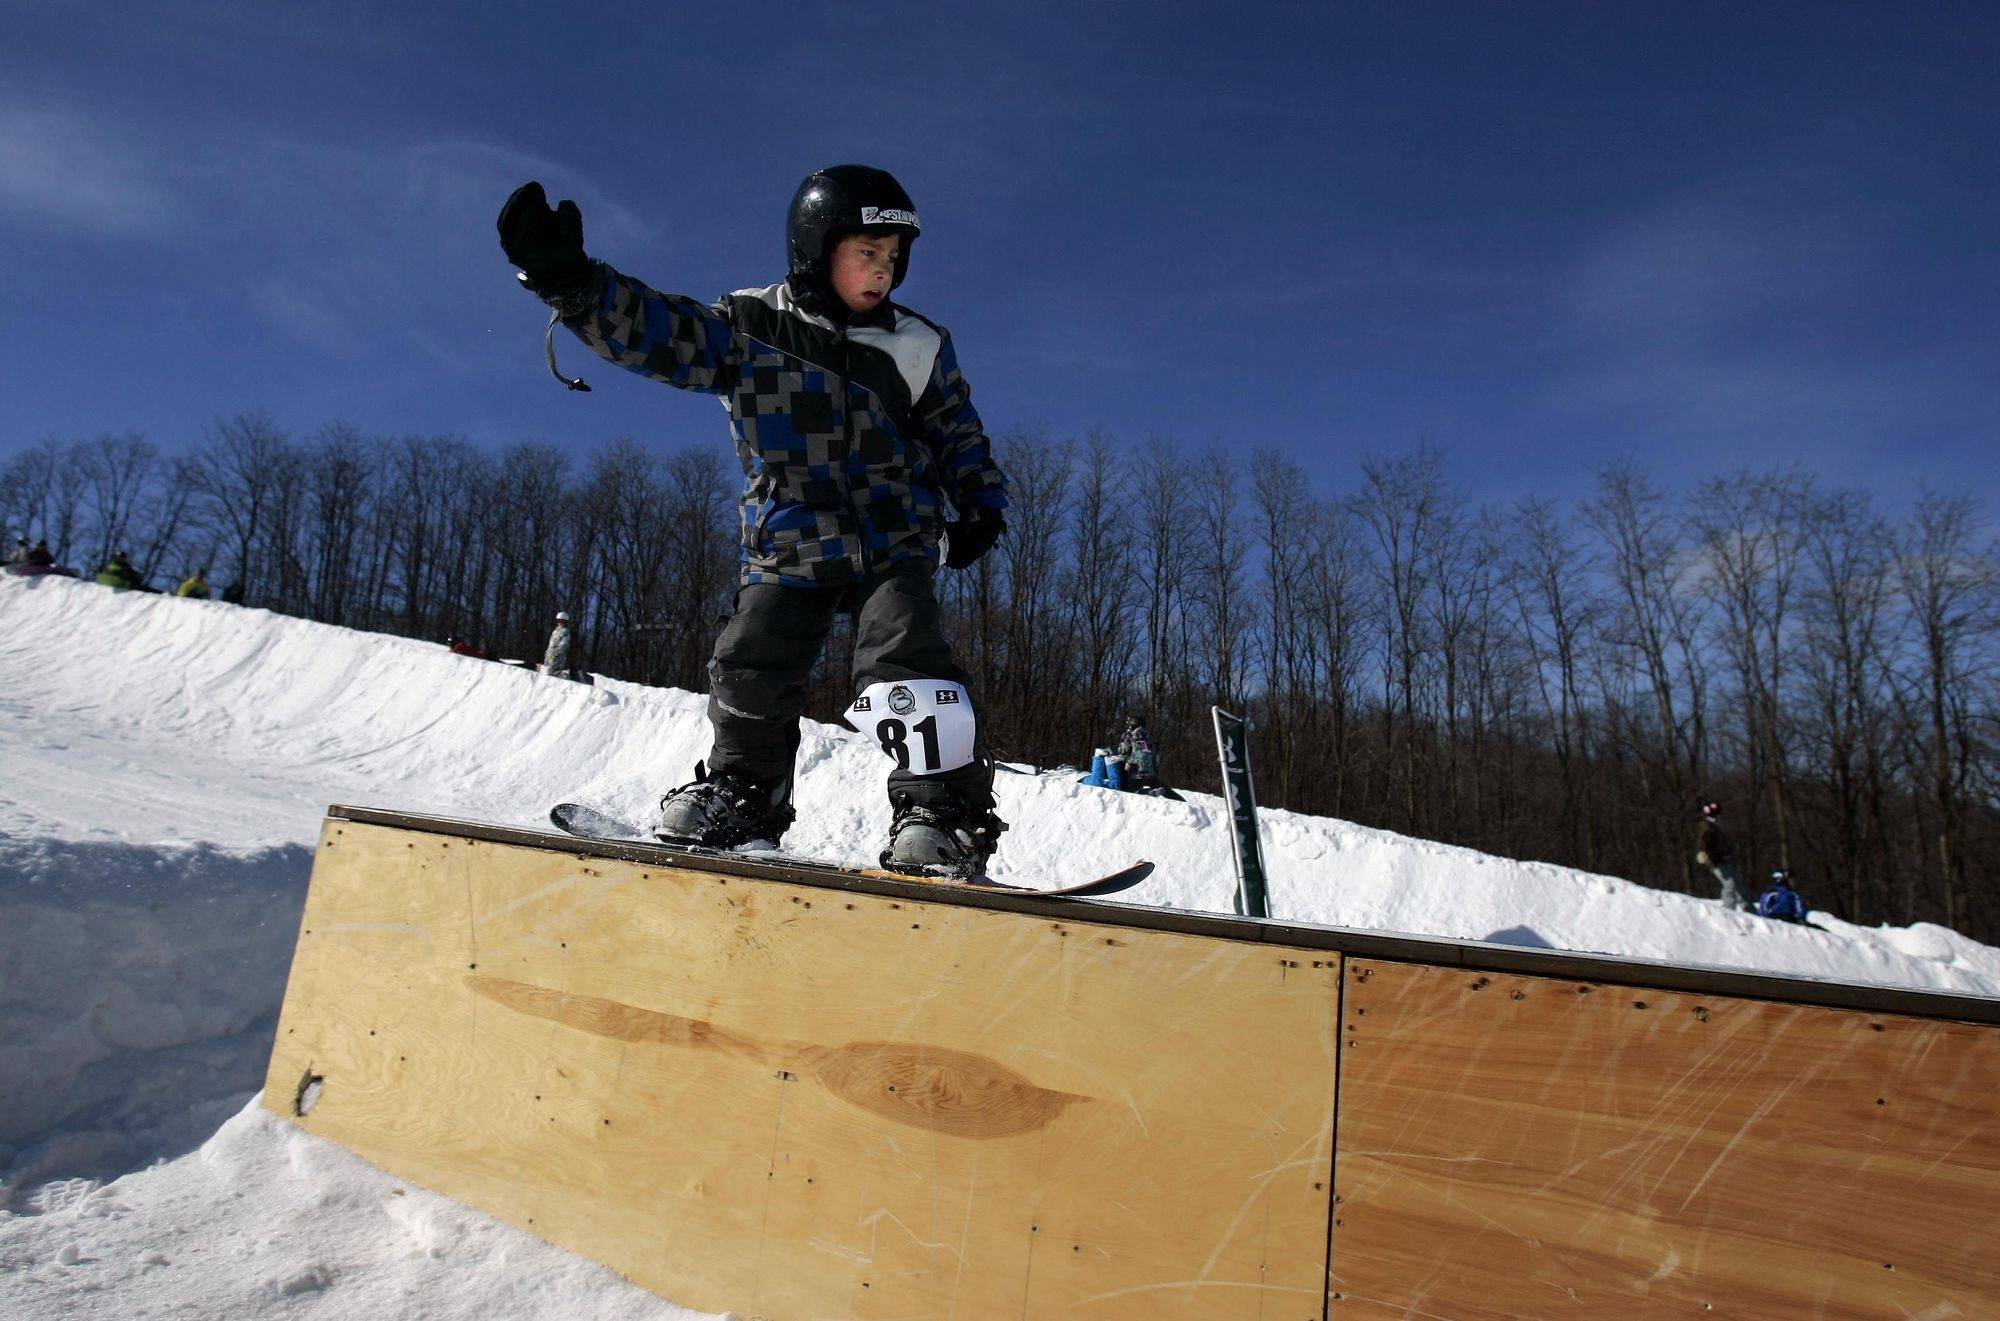 Brian Miller, 9, of West Dundee, competes Saturday during the 3rd Rail Jam at Raging Buffalo in Algonquin. The competition unites amateur skiers and riders with elements of hip hop culture.